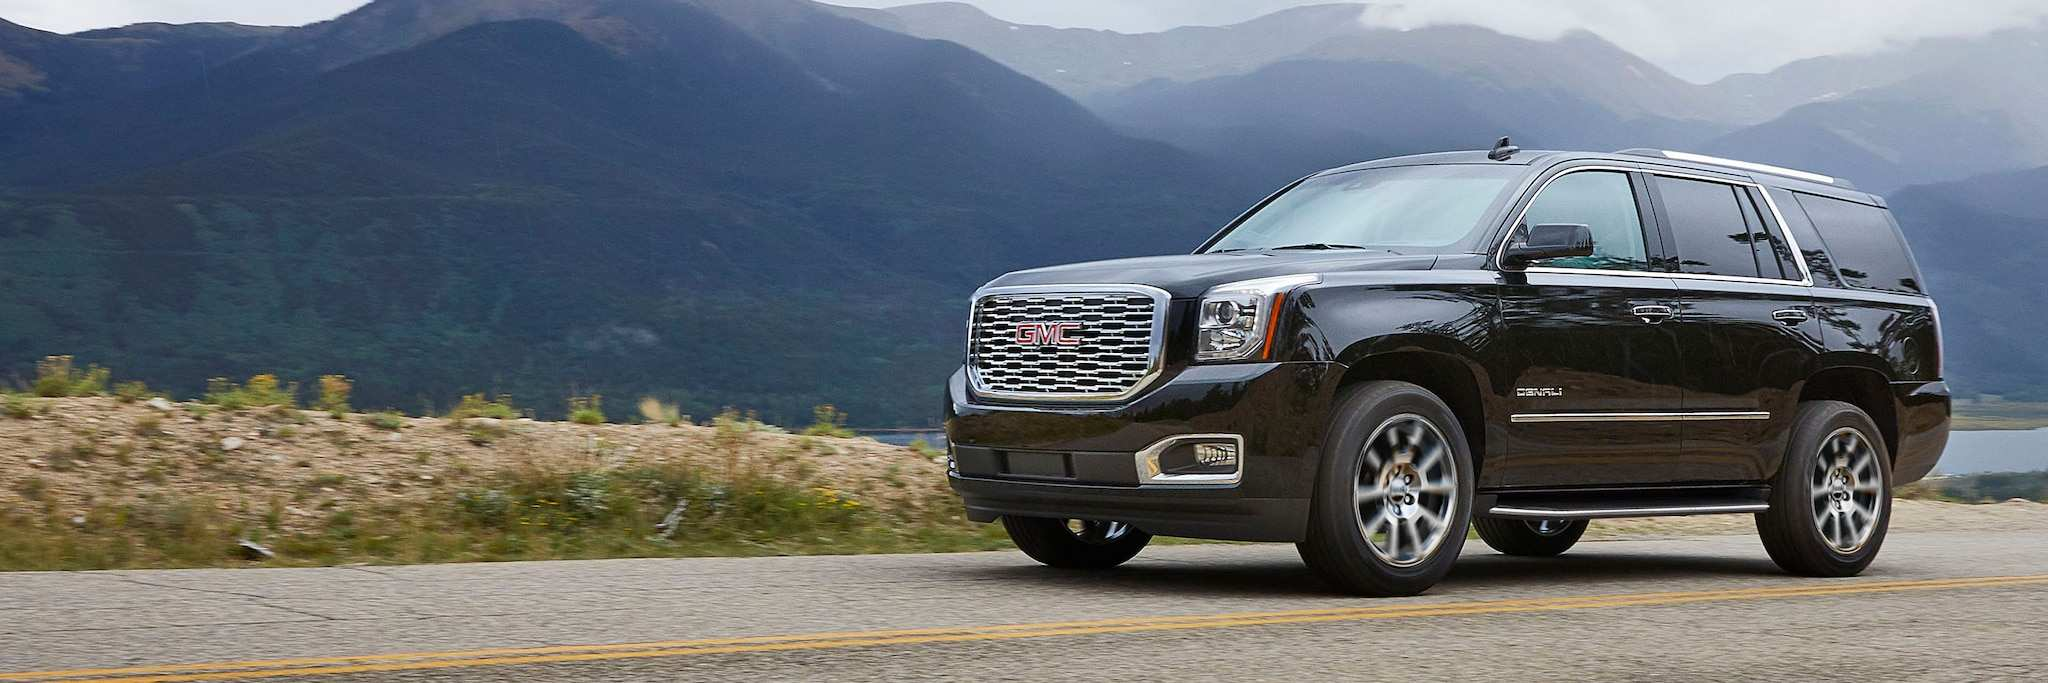 52 Great What Does The 2020 Gmc Yukon Look Like Pricing with What Does The 2020 Gmc Yukon Look Like